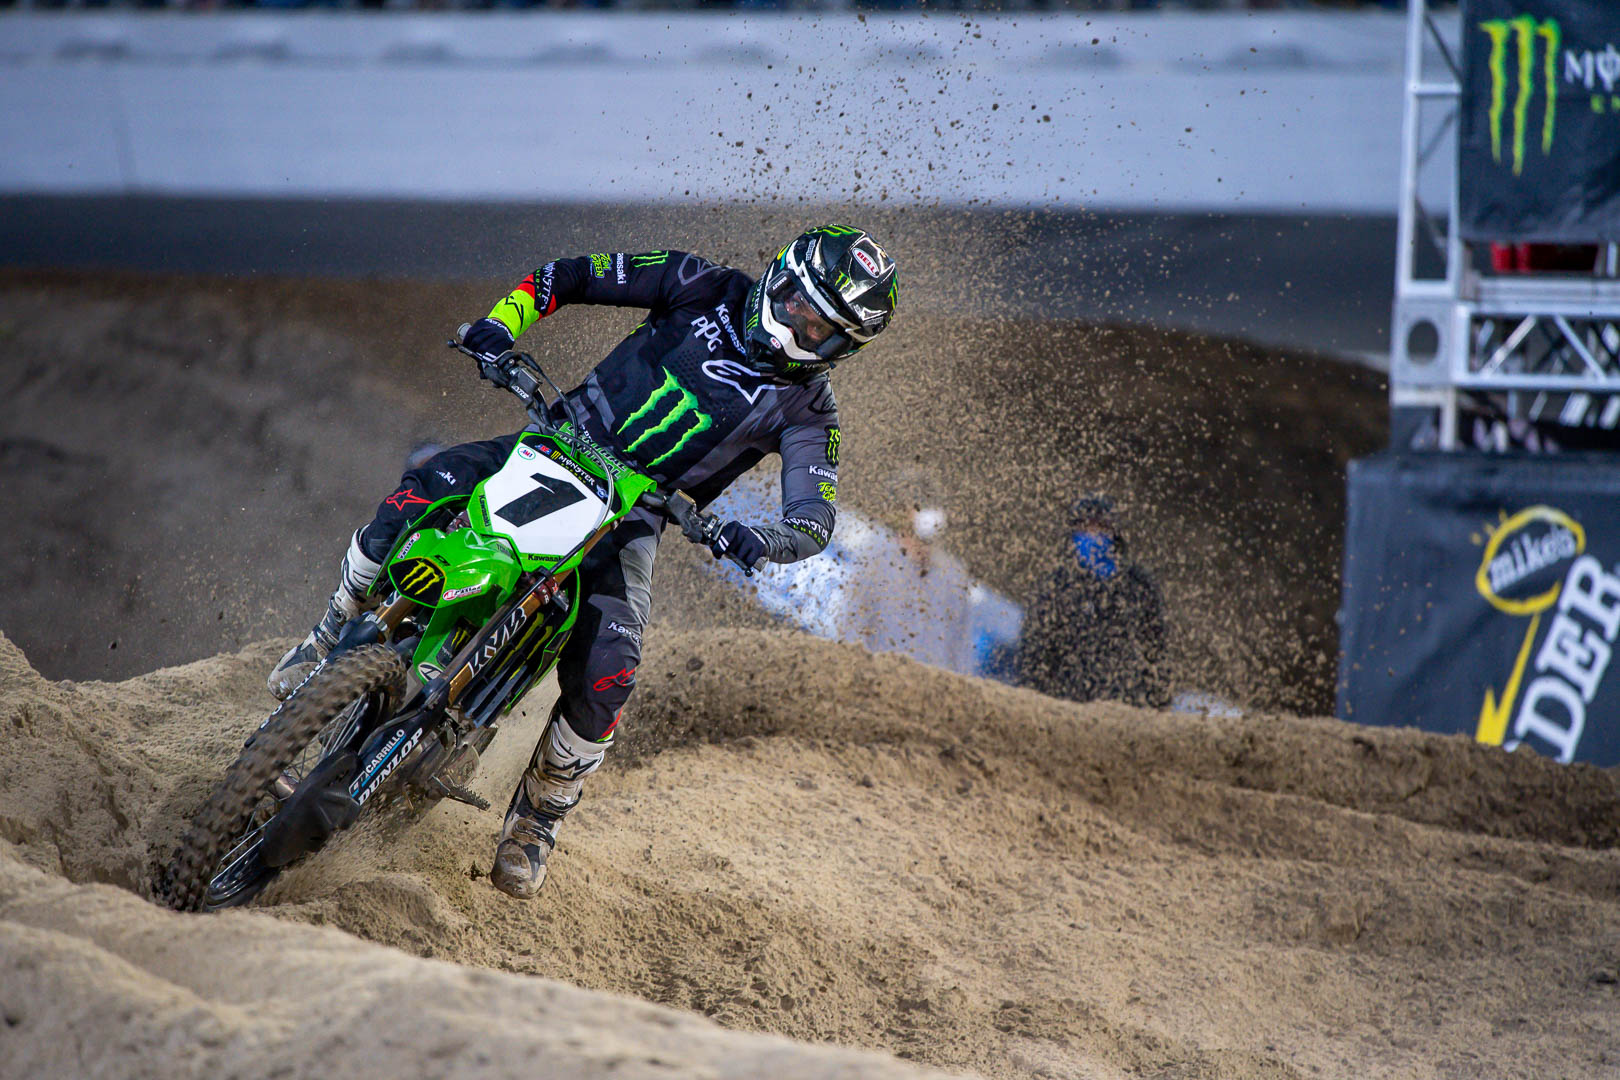 2021 Atlanta 1 Supercross Fantasy Tips: Eli Tomac